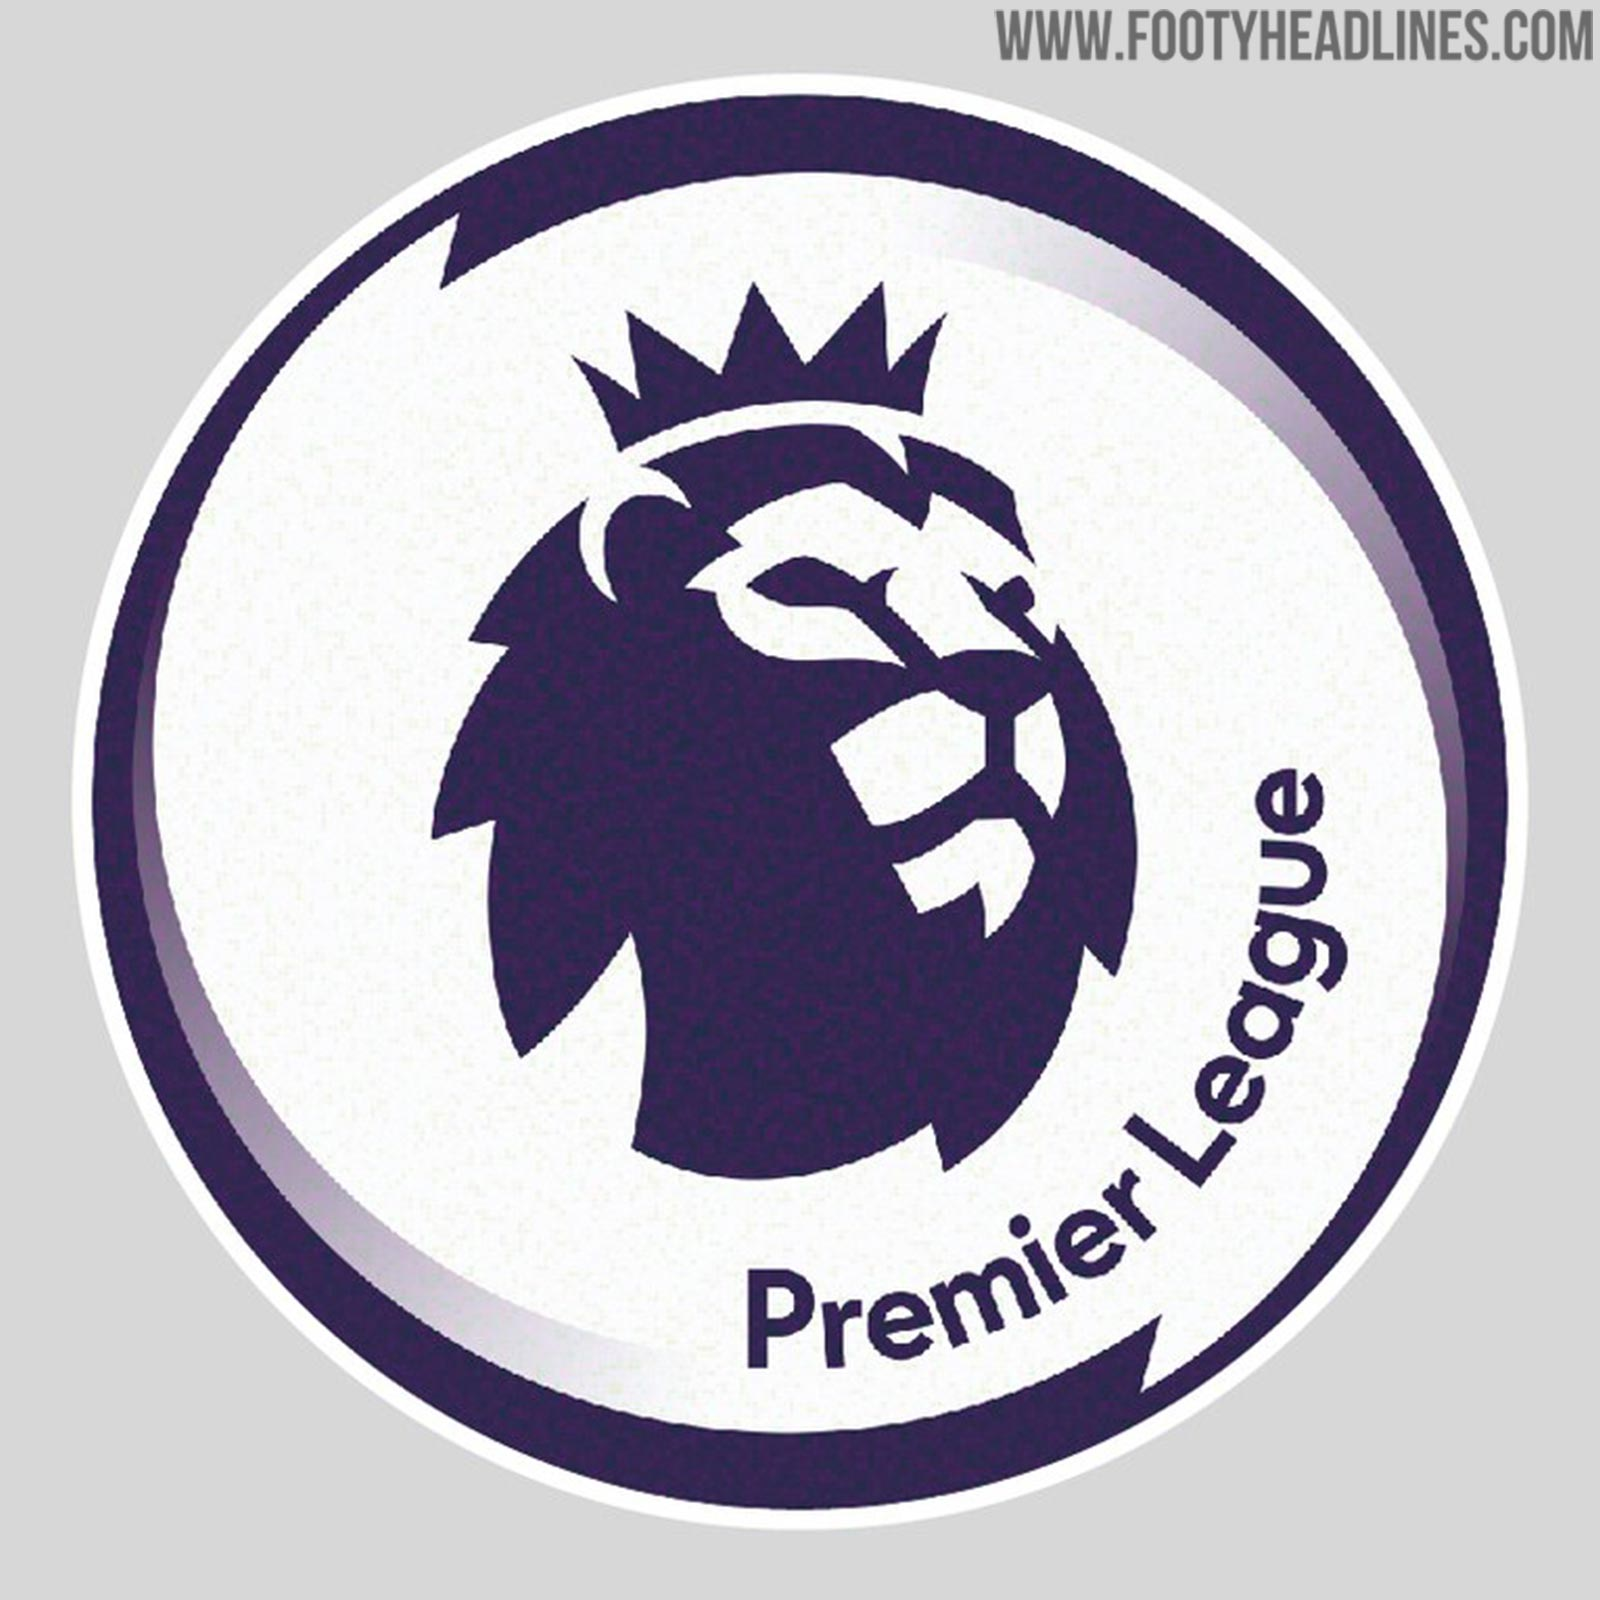 Calendario Premier 2020.New Premier League 19 20 Sleeve Badges Released Footy